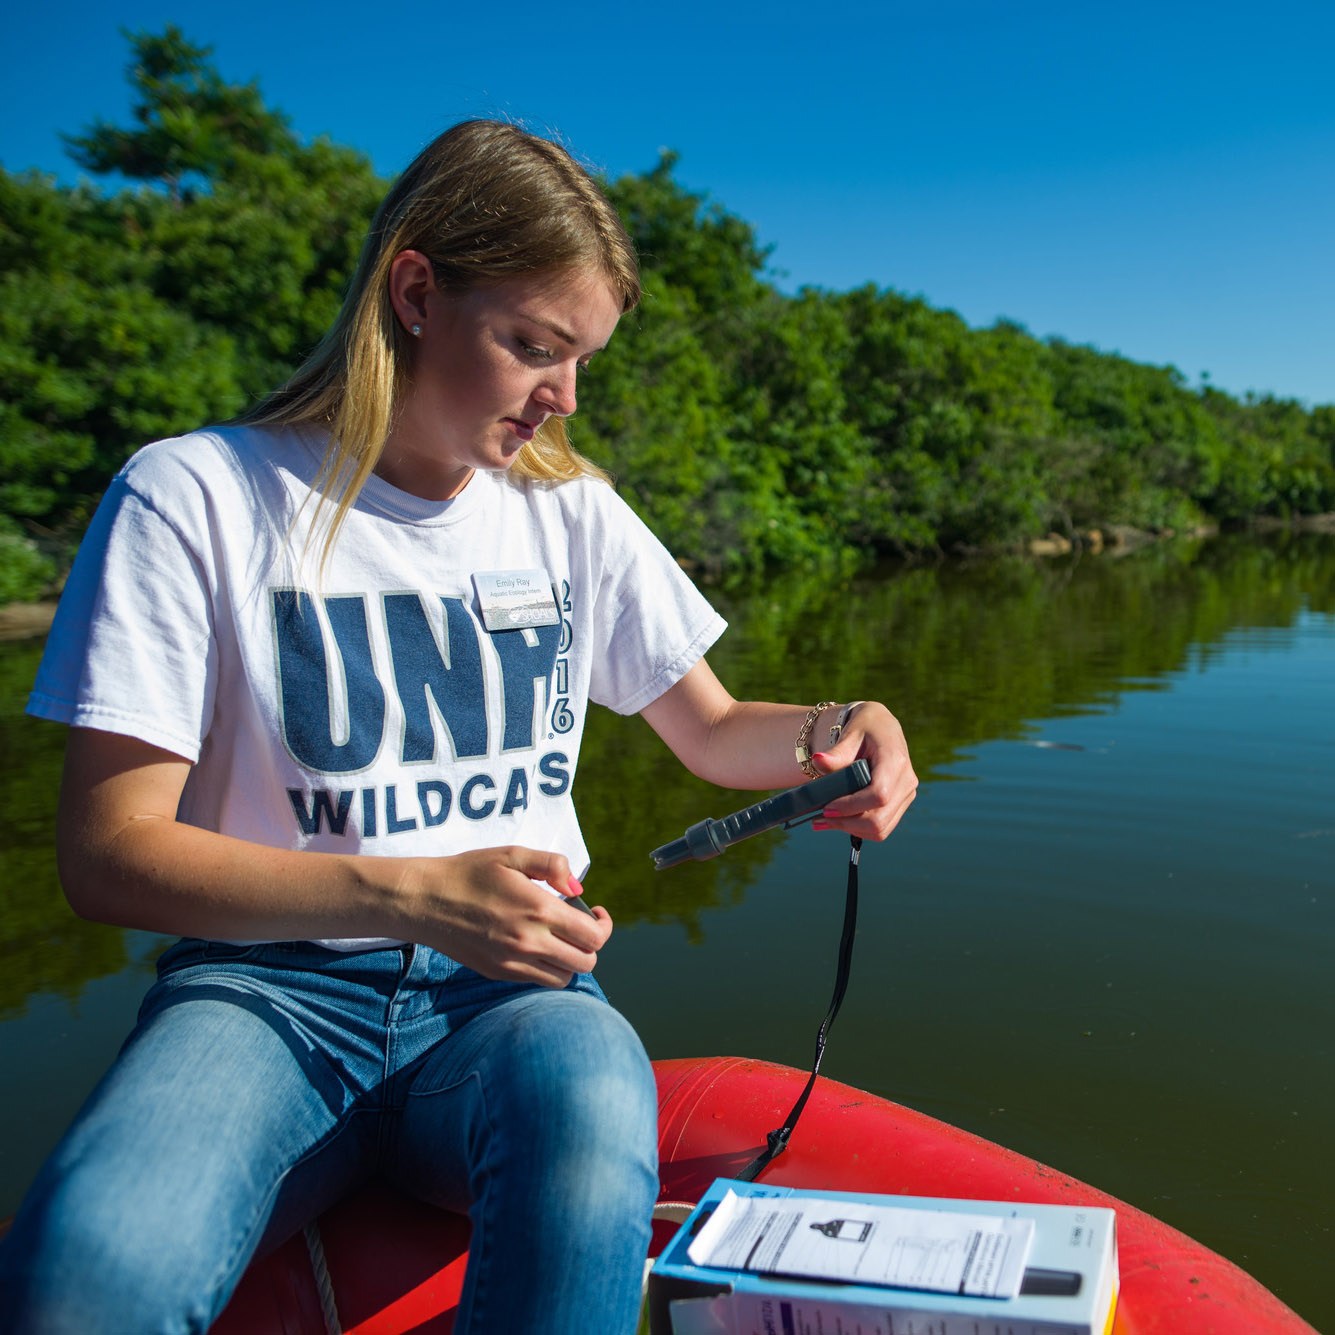 Student taking measurements of lake water